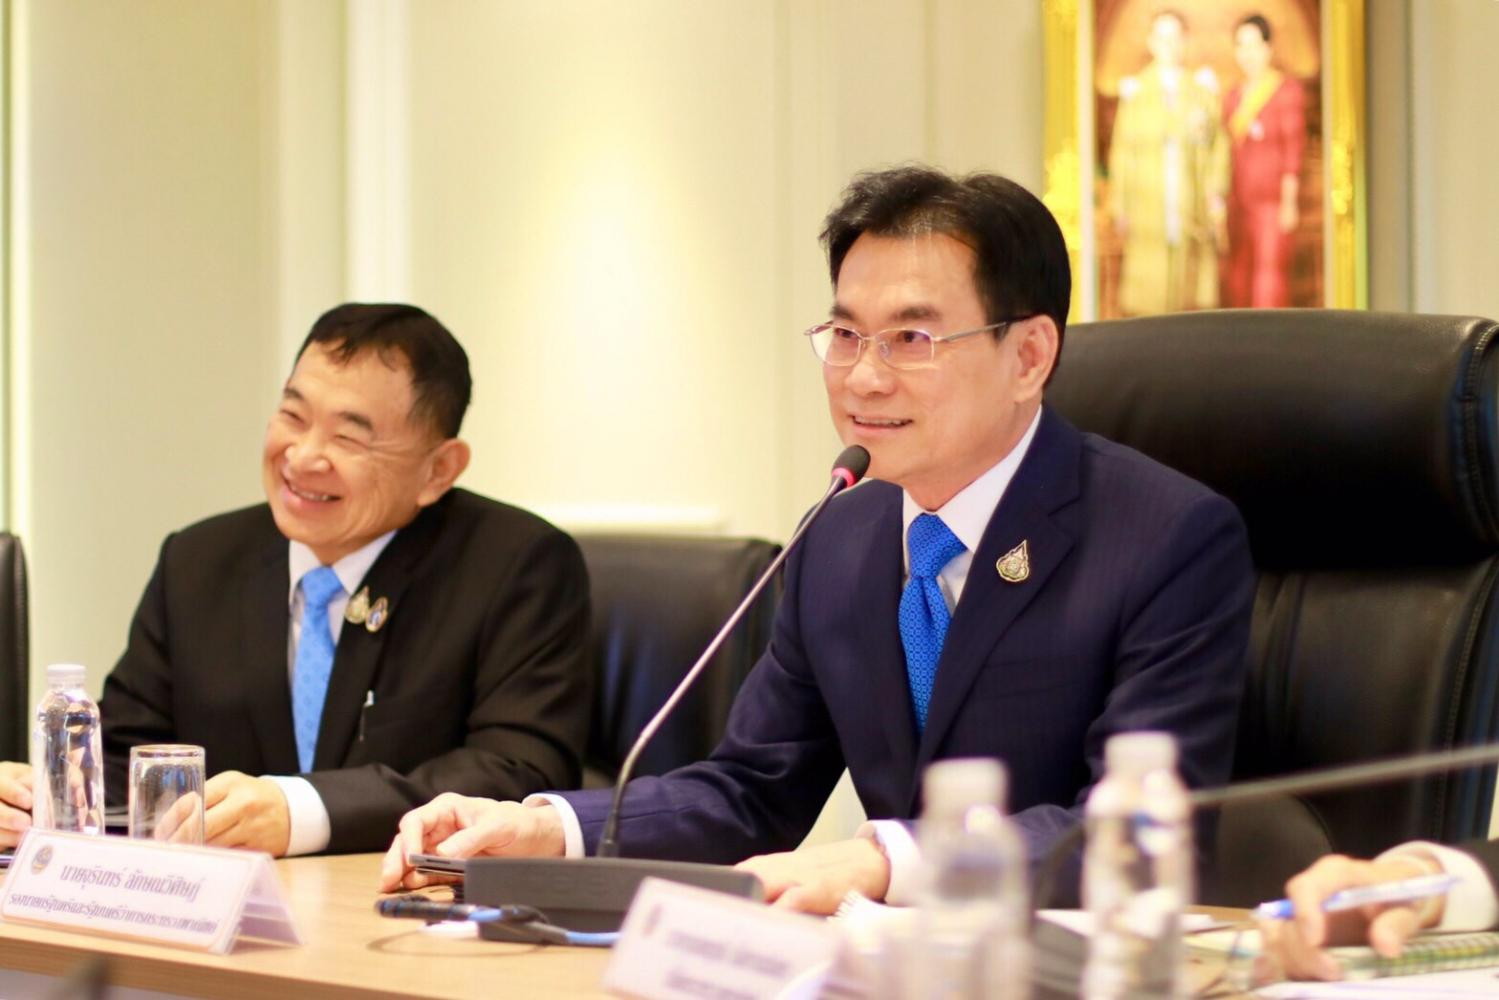 At Wednesday's meeting with senior ministry officials, Mr Jurin outlines urgent trade policies to revive the economy.